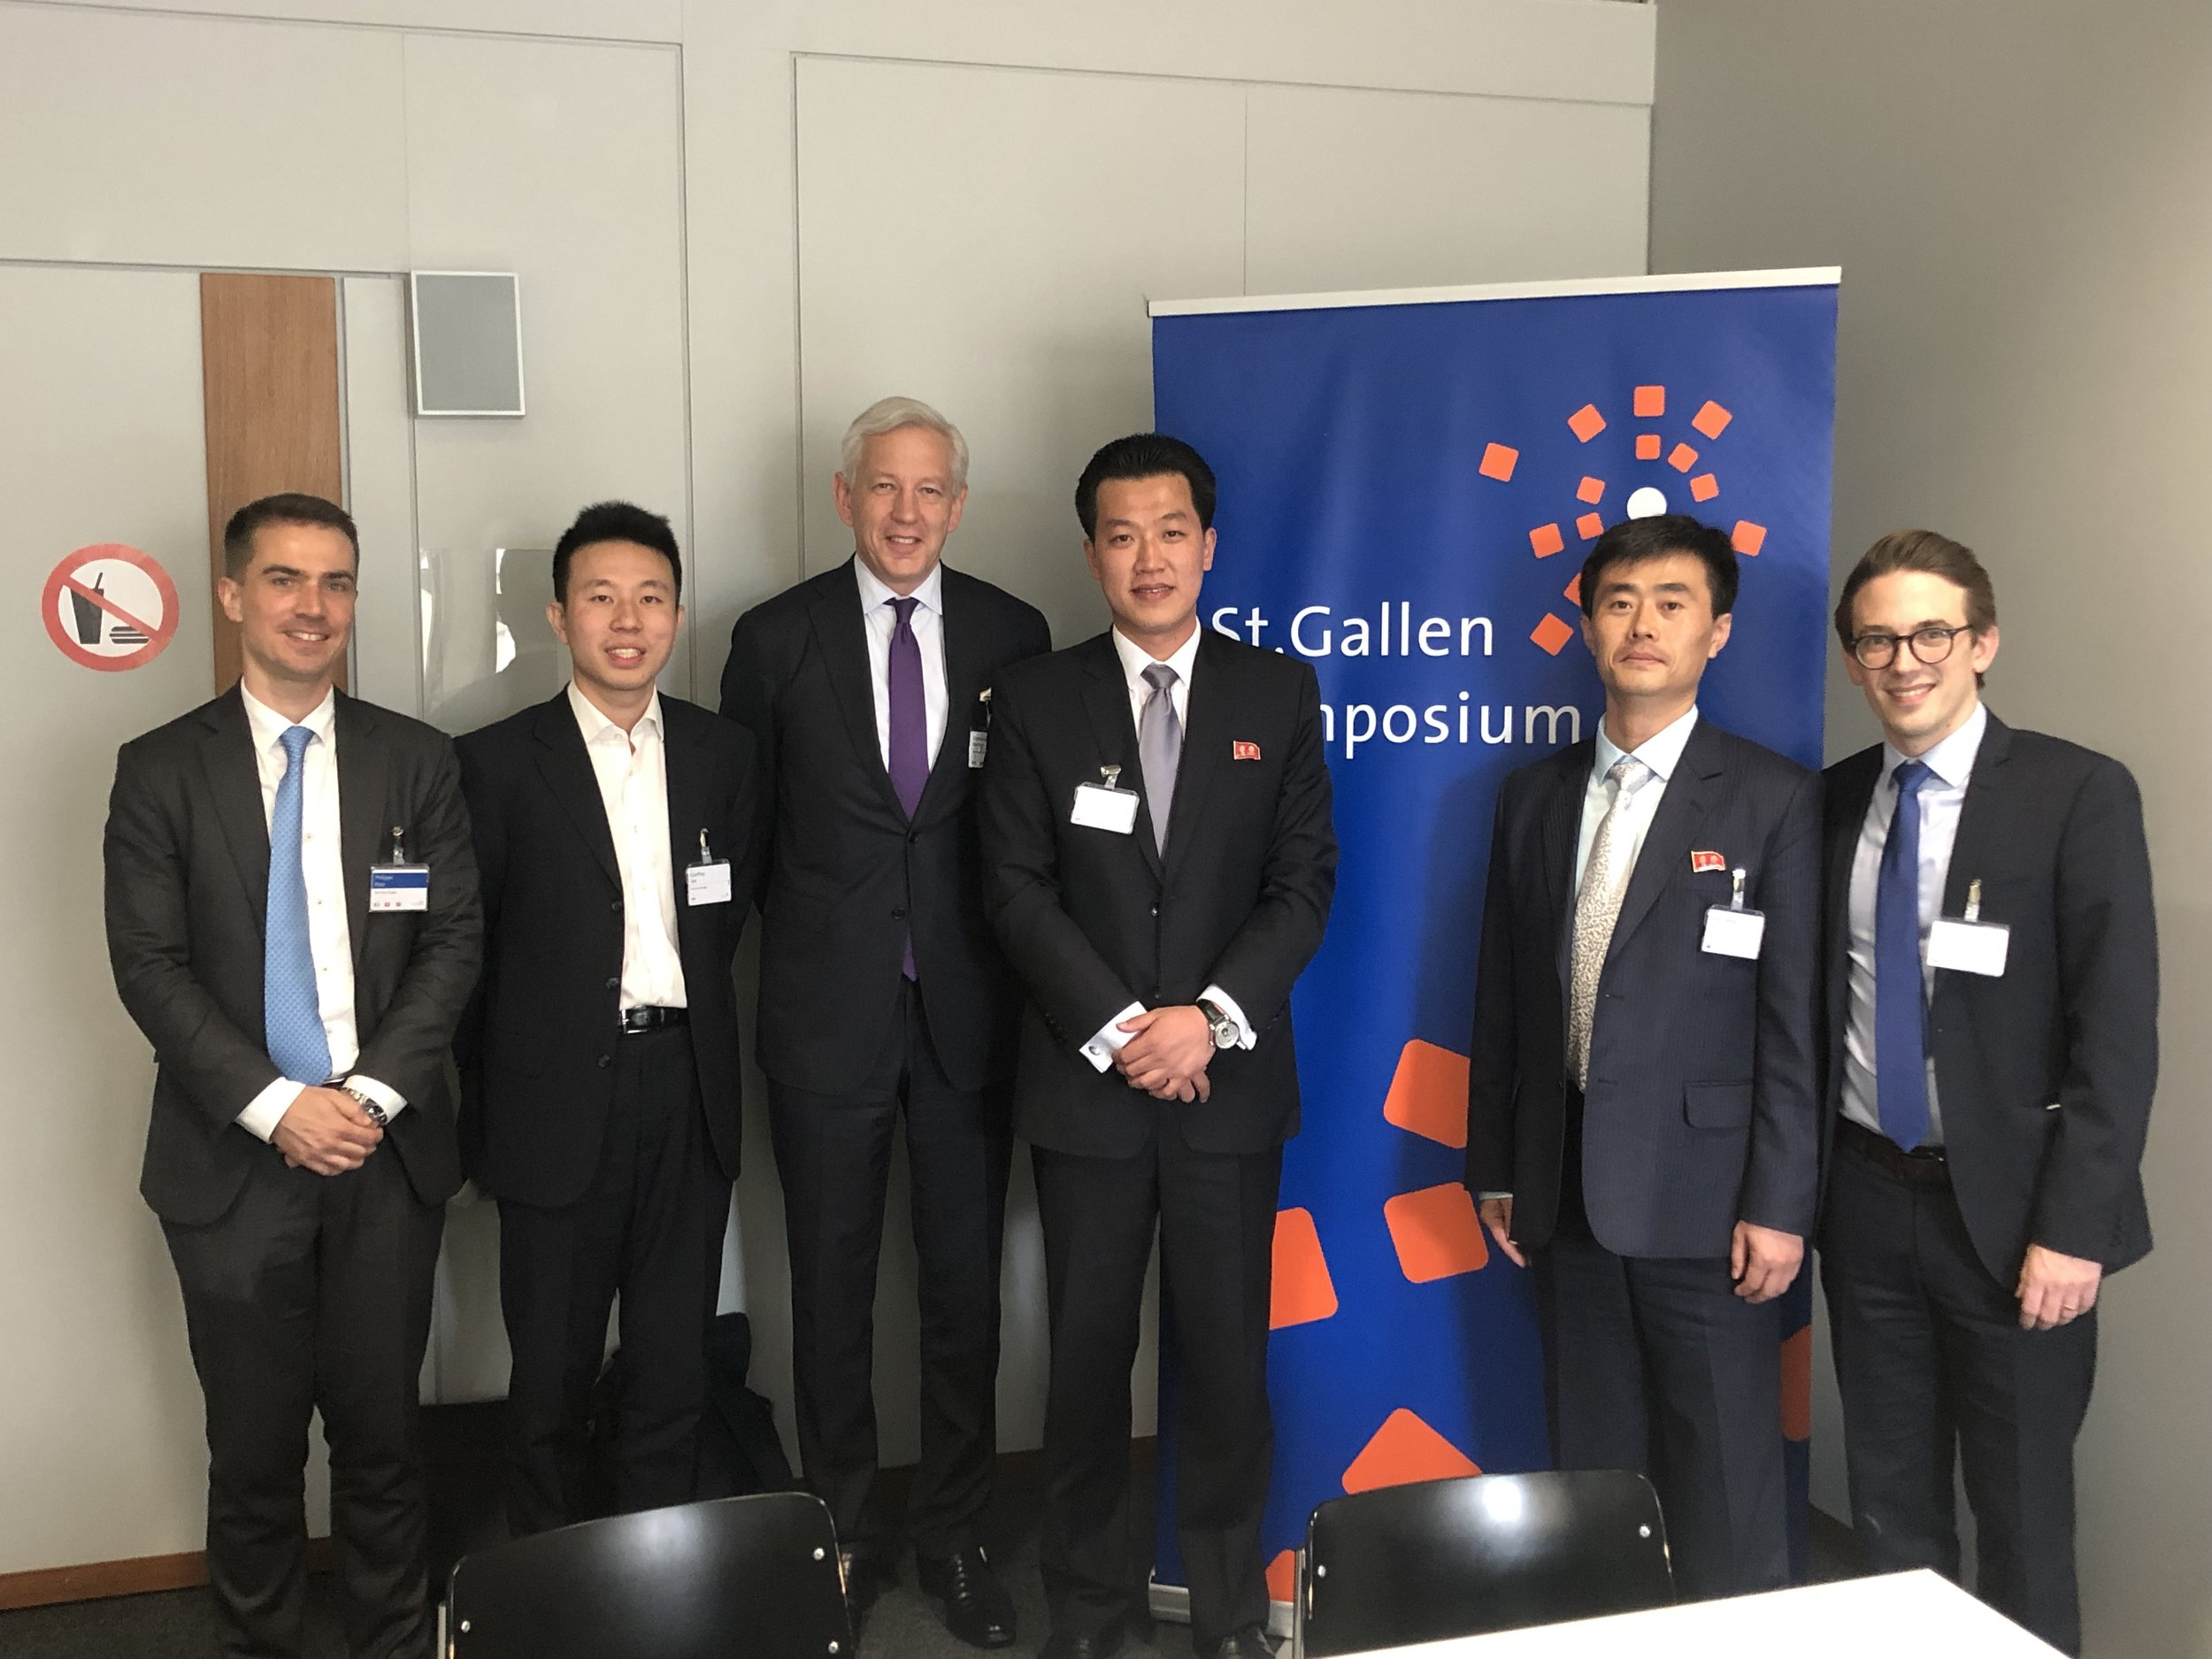 Dominic Barton, Chairman of the St Gallen Symposium and former Global Managing Director at McKinsey gave a warm welcome to Choson Exchange volunteers and our DPRK guests. We are joined by St Gallen Symposium Foundation staff who helped us make this dialogue happen.